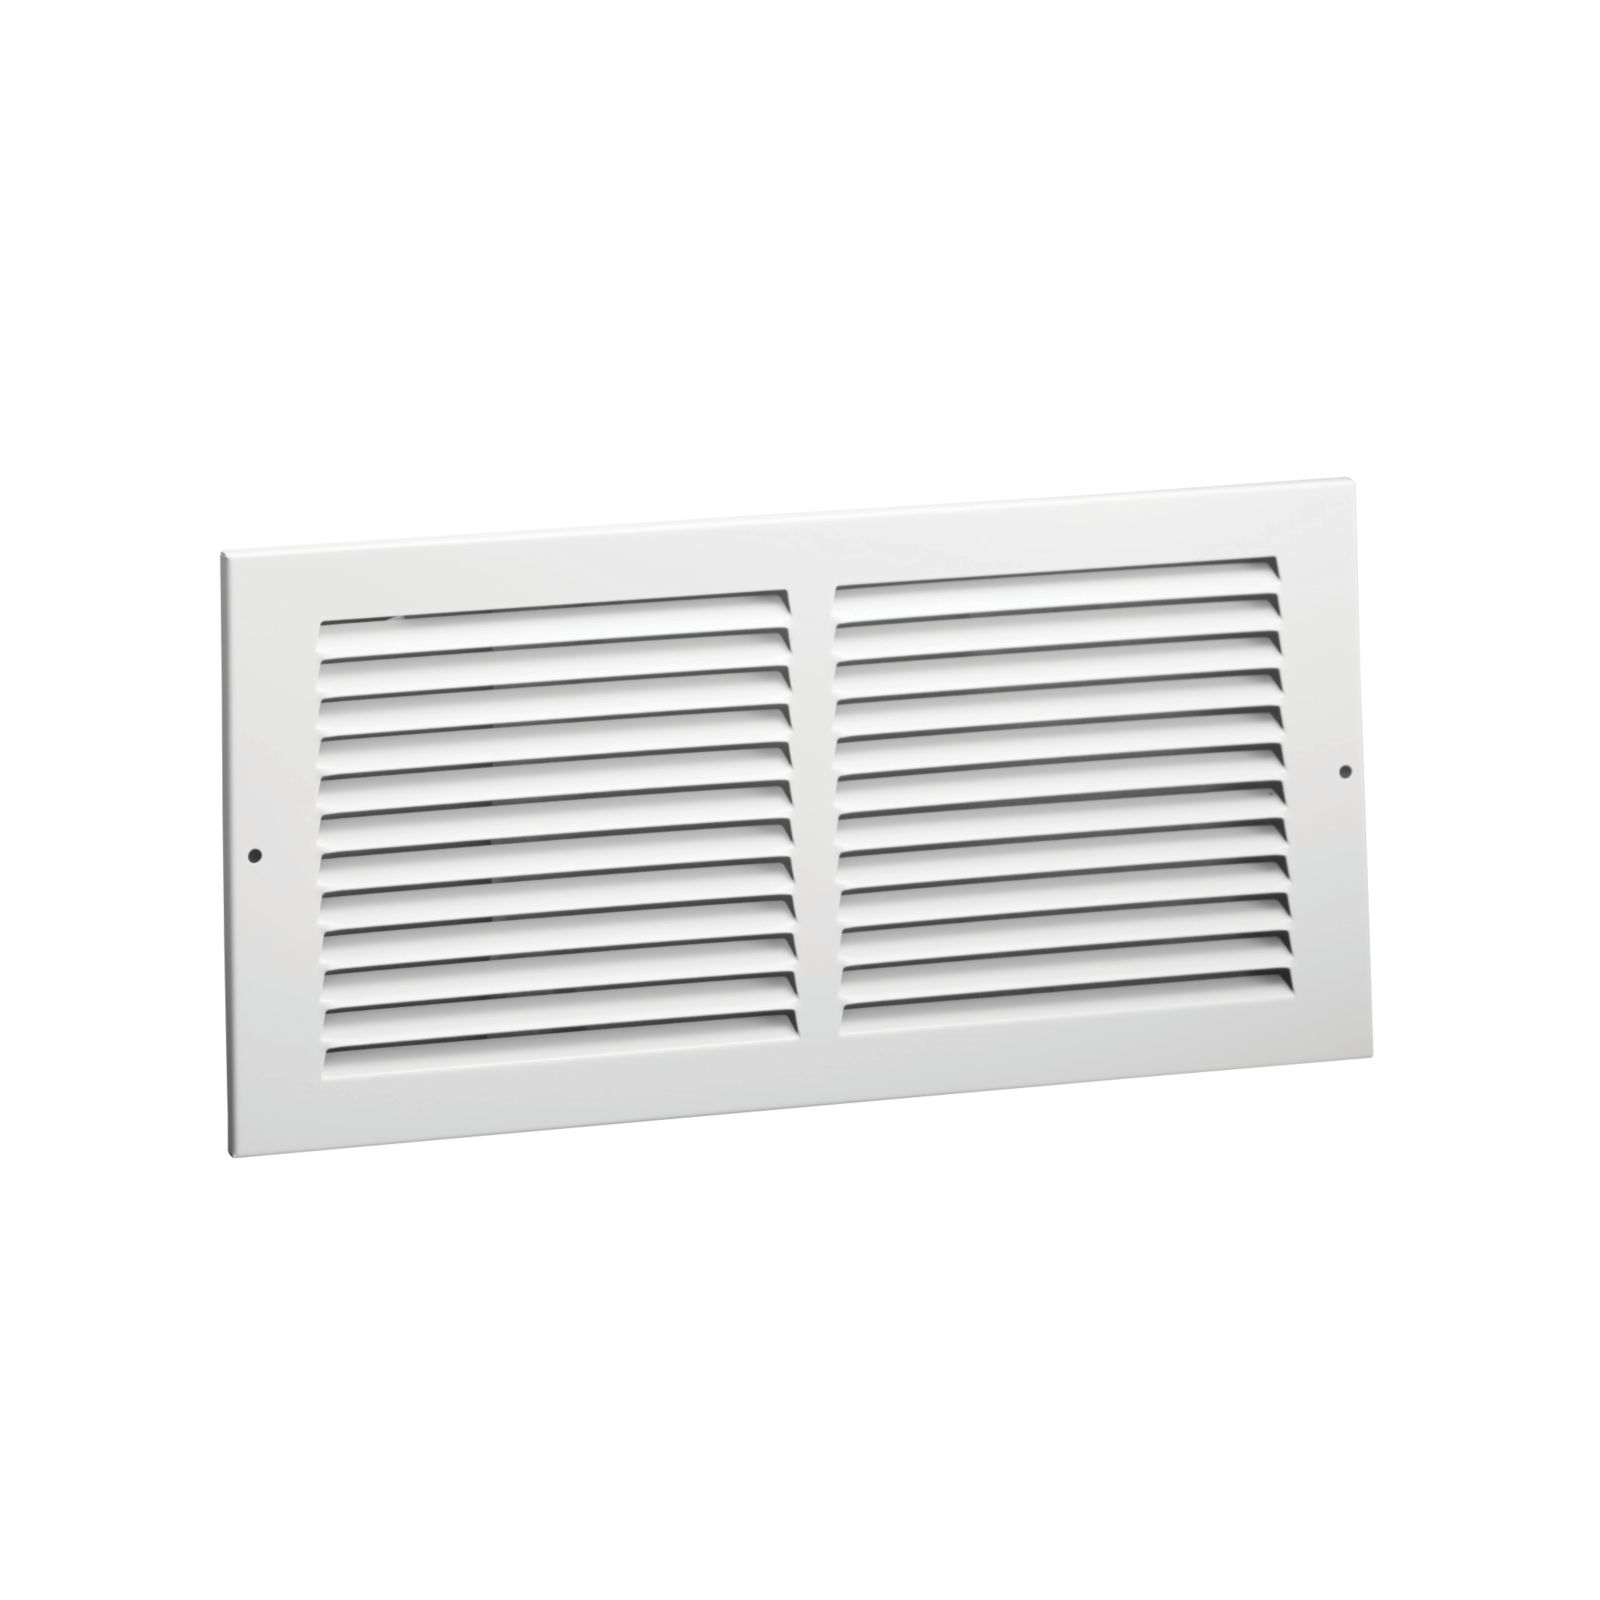 "Hart & Cooley 043365 - #672 Steel Return Air Grille, White Finish, 24"" X 12"""